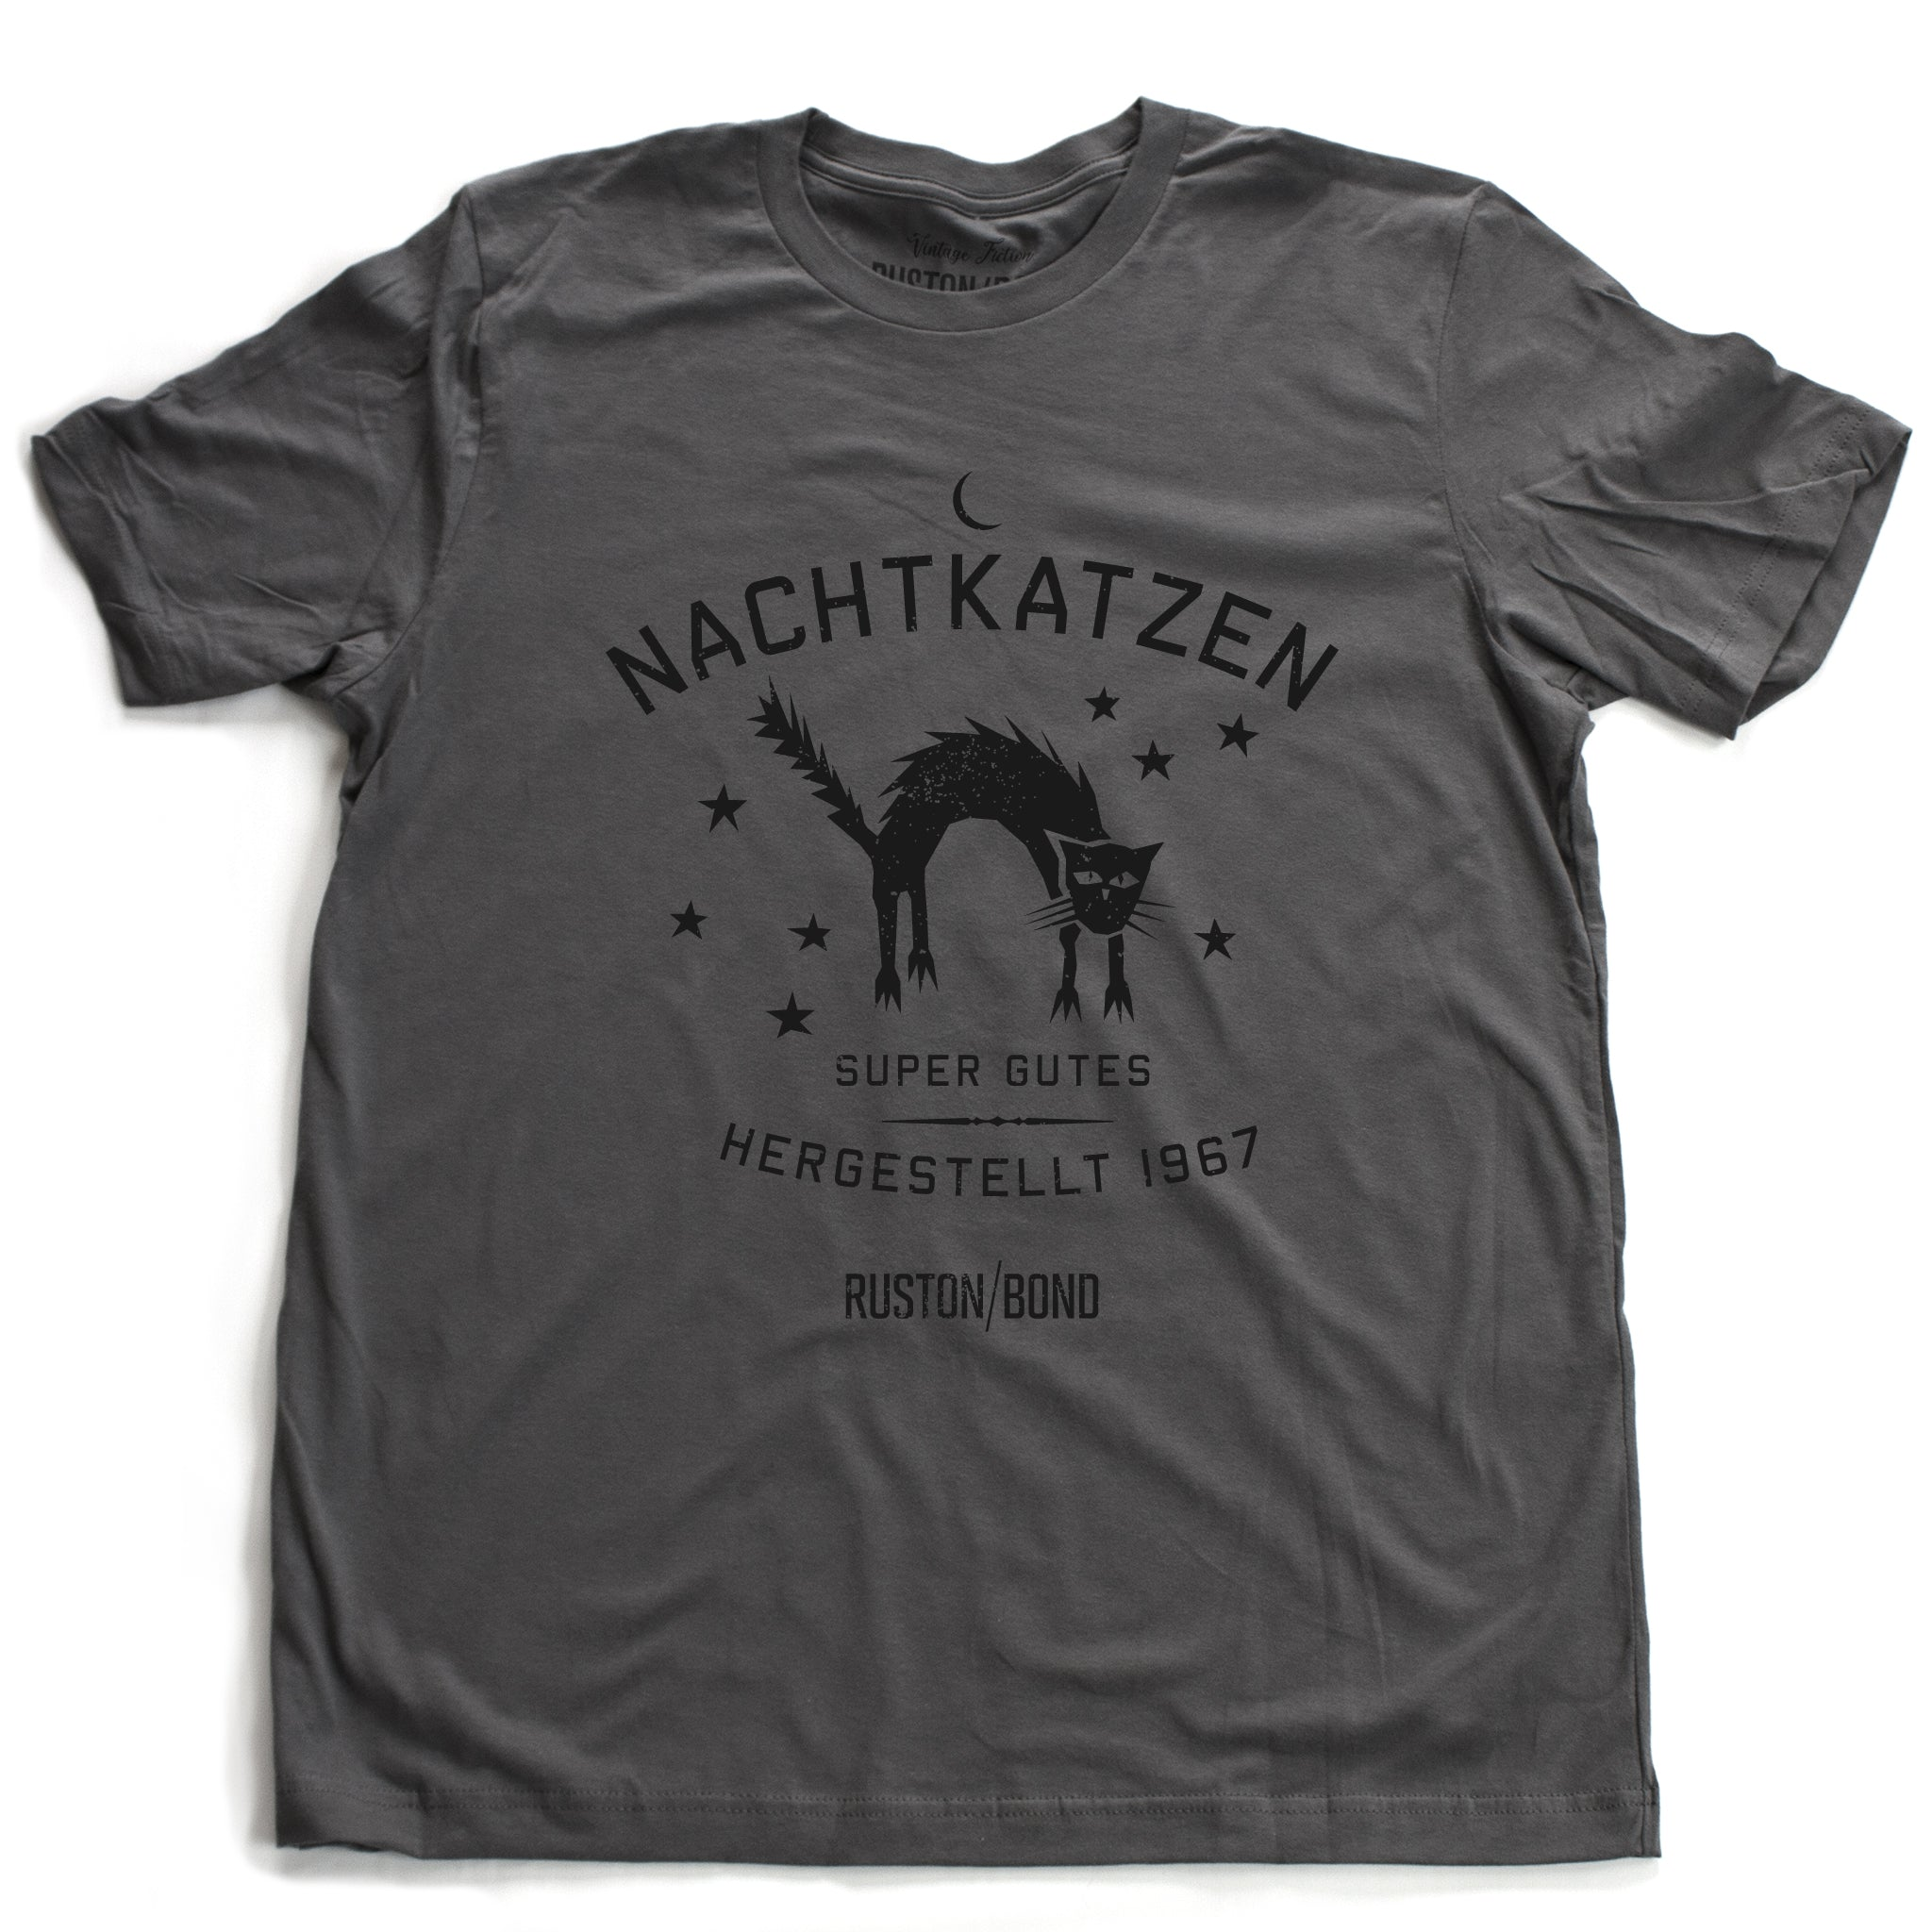 "A vintage-inspired retro design graphic t-shirt in Asphalt Gray, featuring the image of an arched cat among stars, and the German text ""NACHTKATZEN, Super Gutes"" — translating to ""Night Cats, super good"" and the year 1967, with the Ruston/Bond logo beneath. From wolfsaint.net"